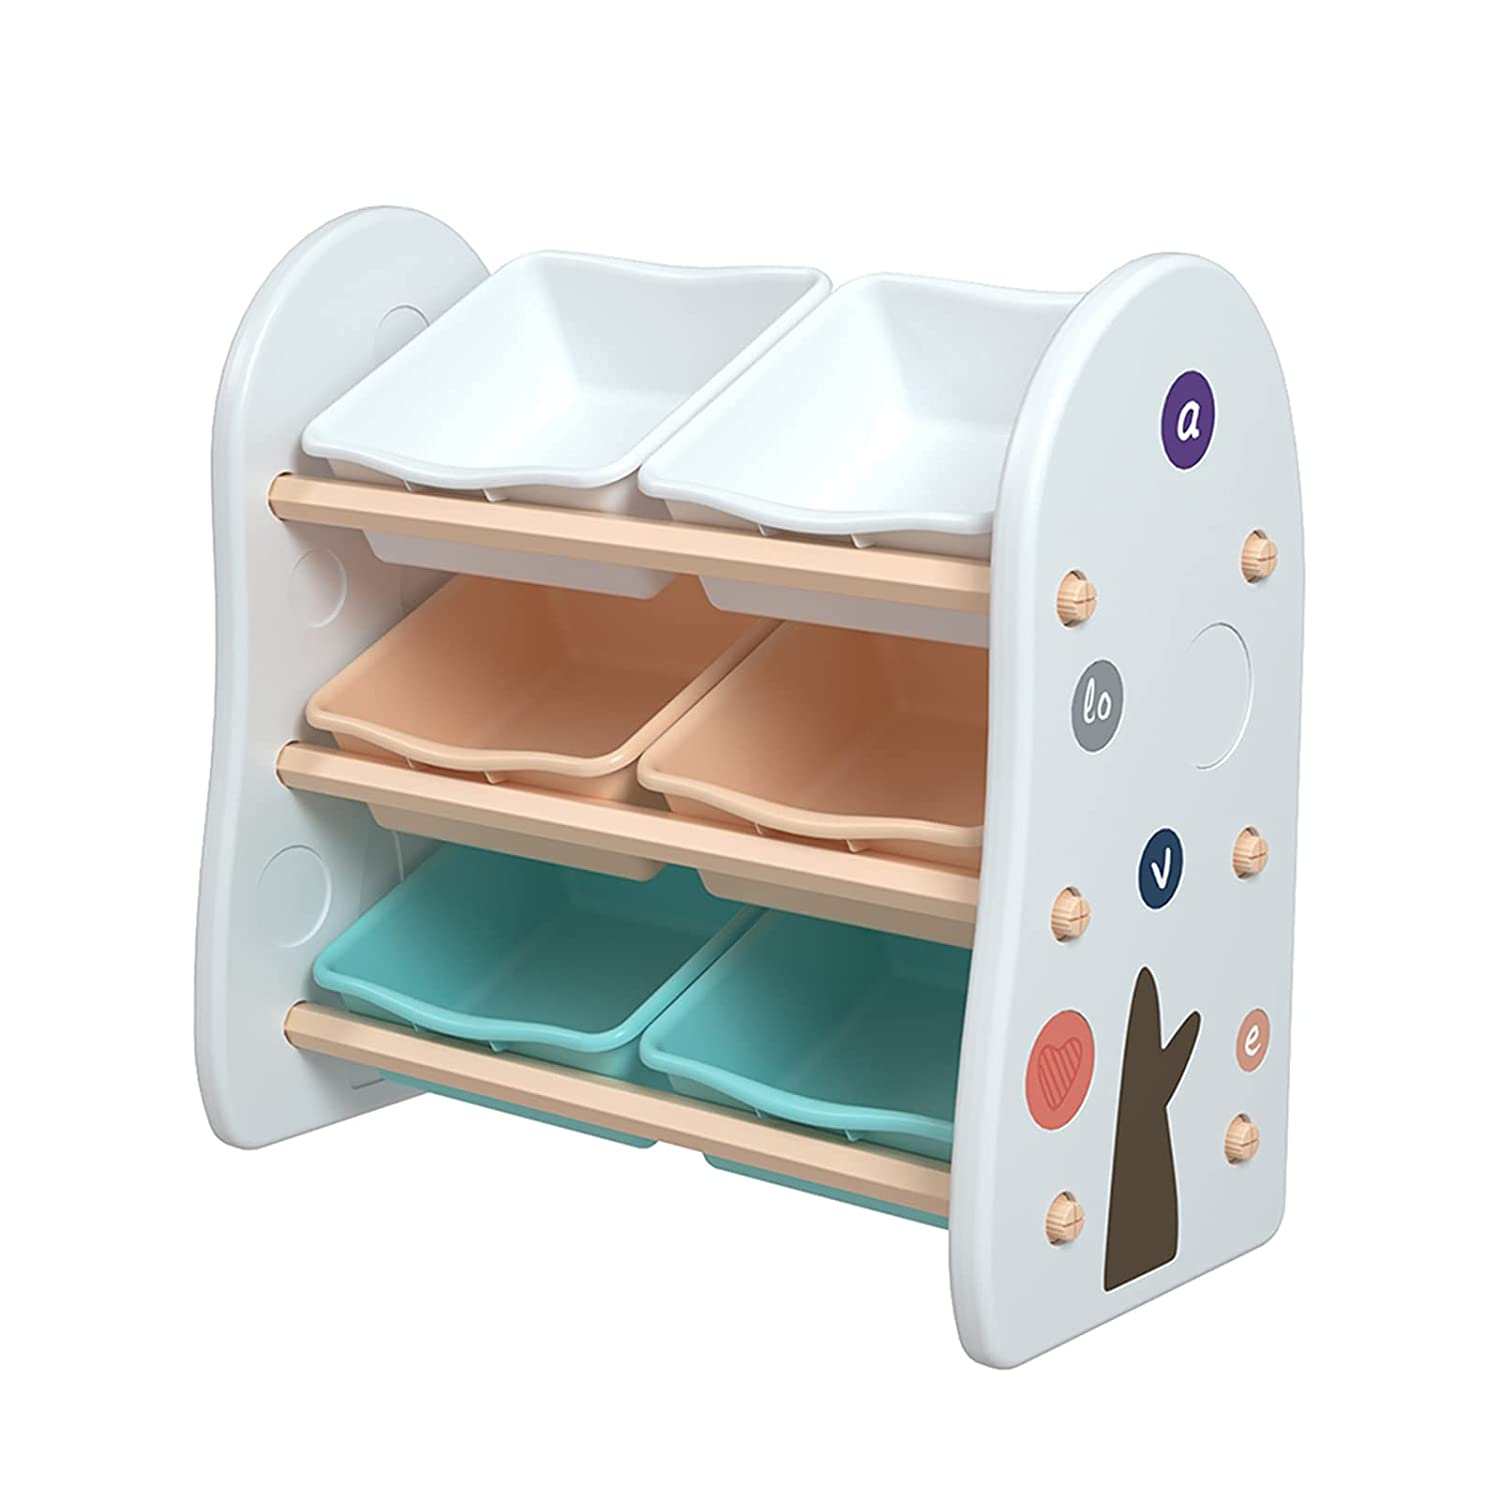 Trlec gt4-ly San Diego Mall 35% OFF Practical Wooden Kids' Organizer Storage with Toy 6